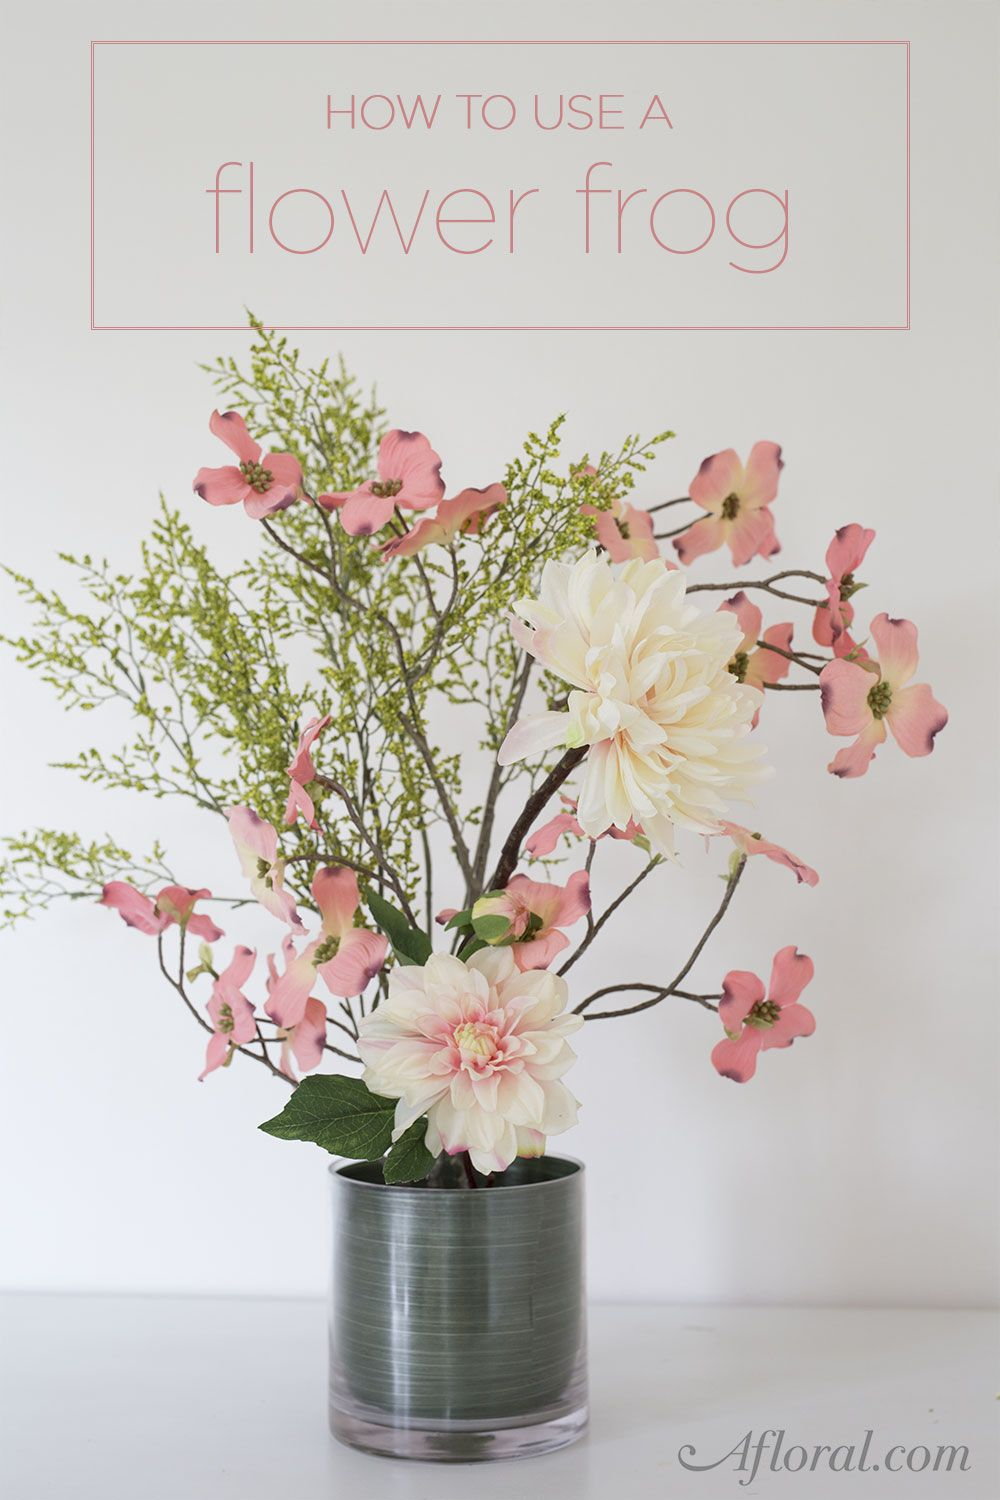 How To Use A Flower Frog | Modern flower arrangements, Artificial ...